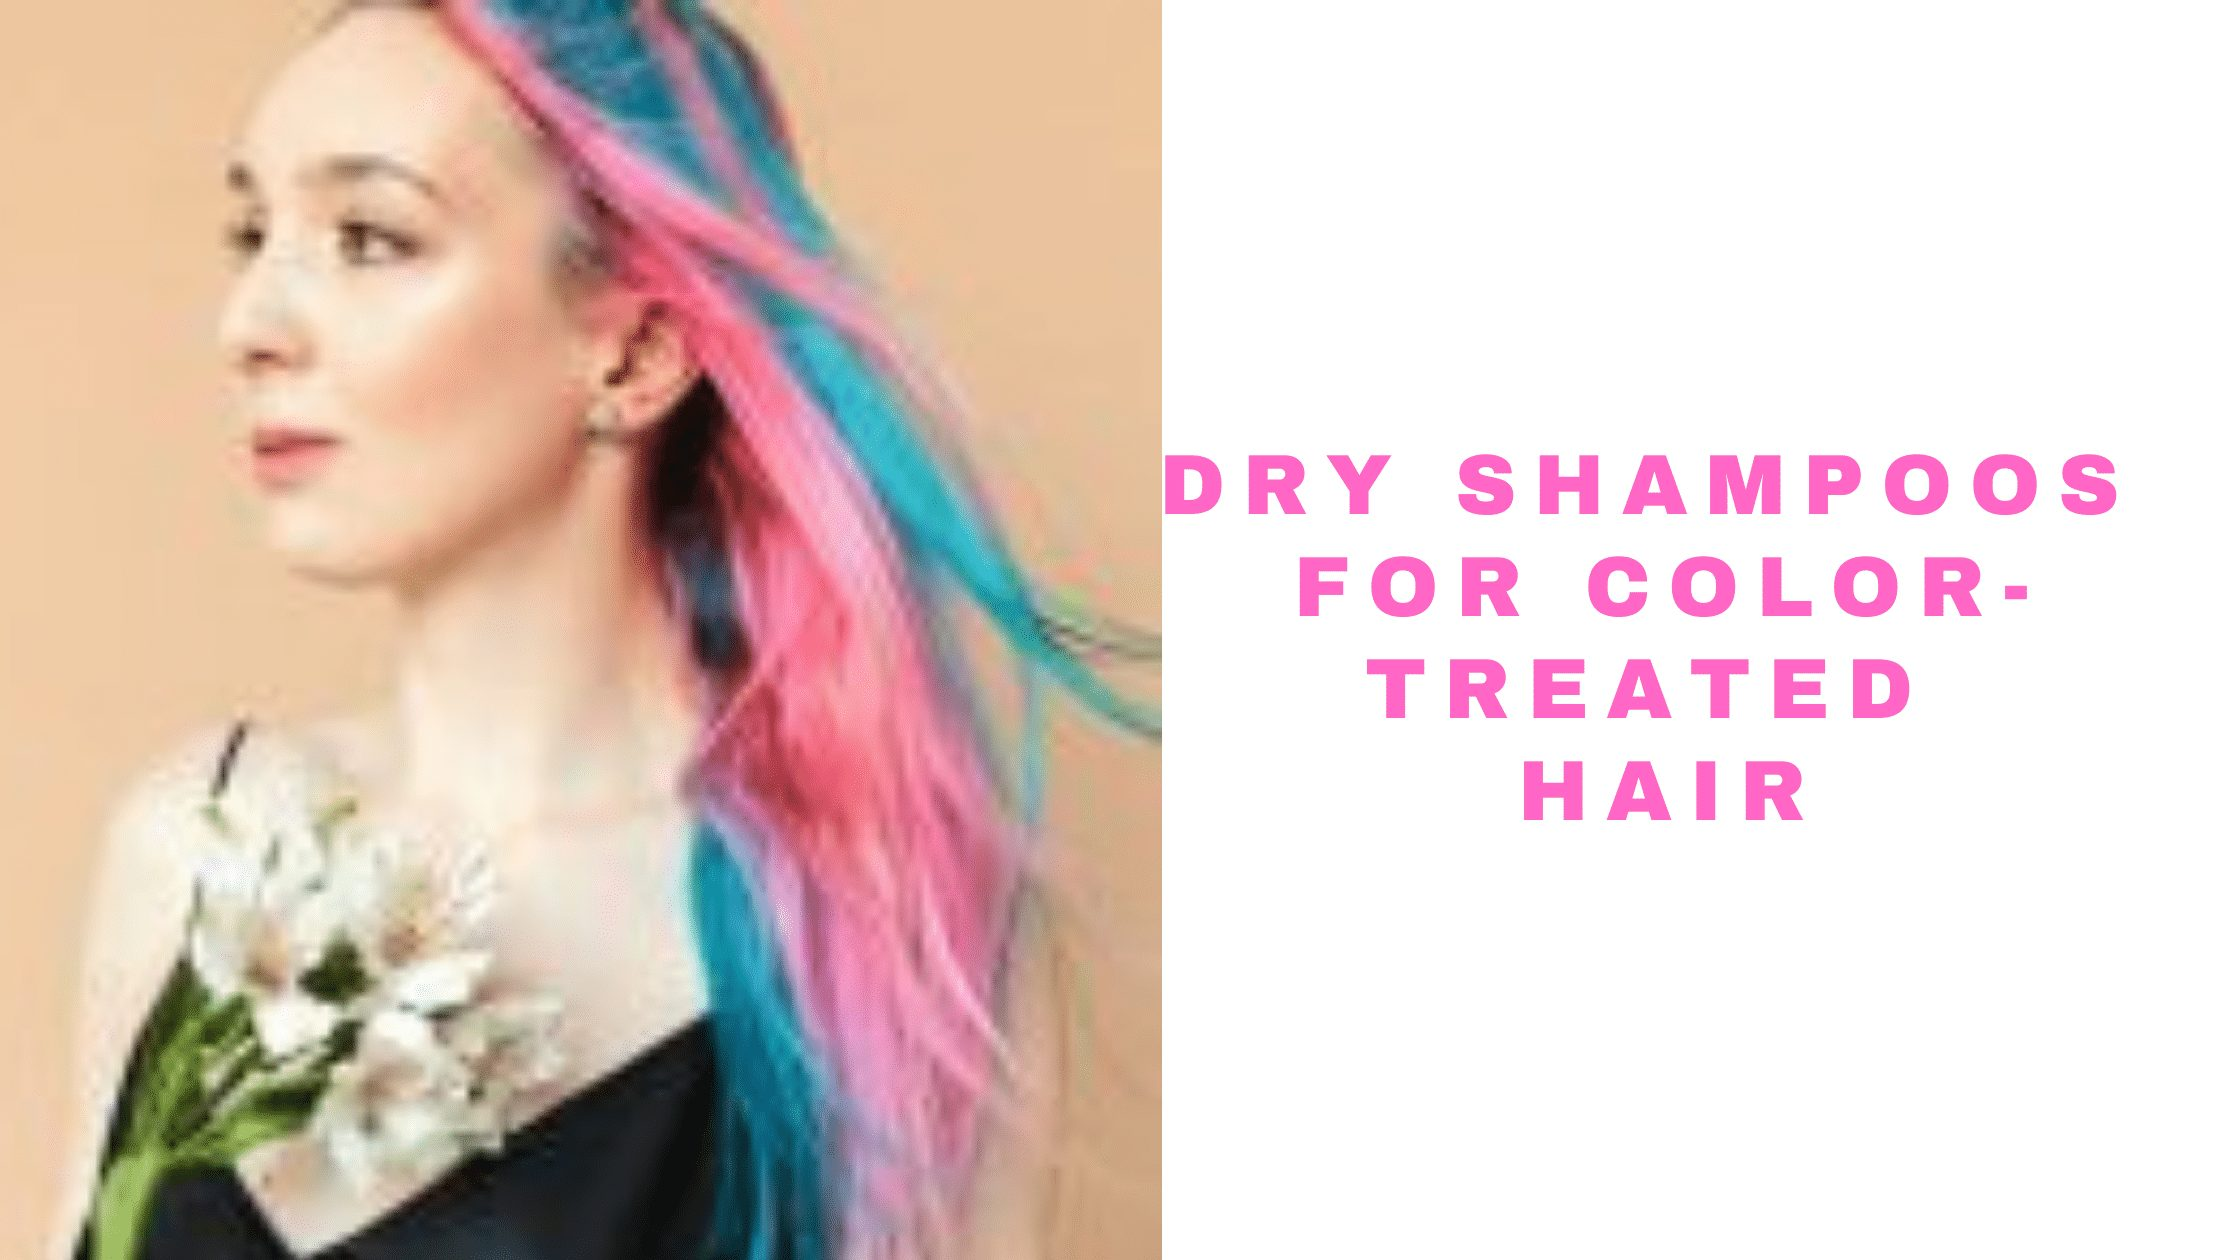 10 Best Dry Shampoos For Color Treated Hair 2021